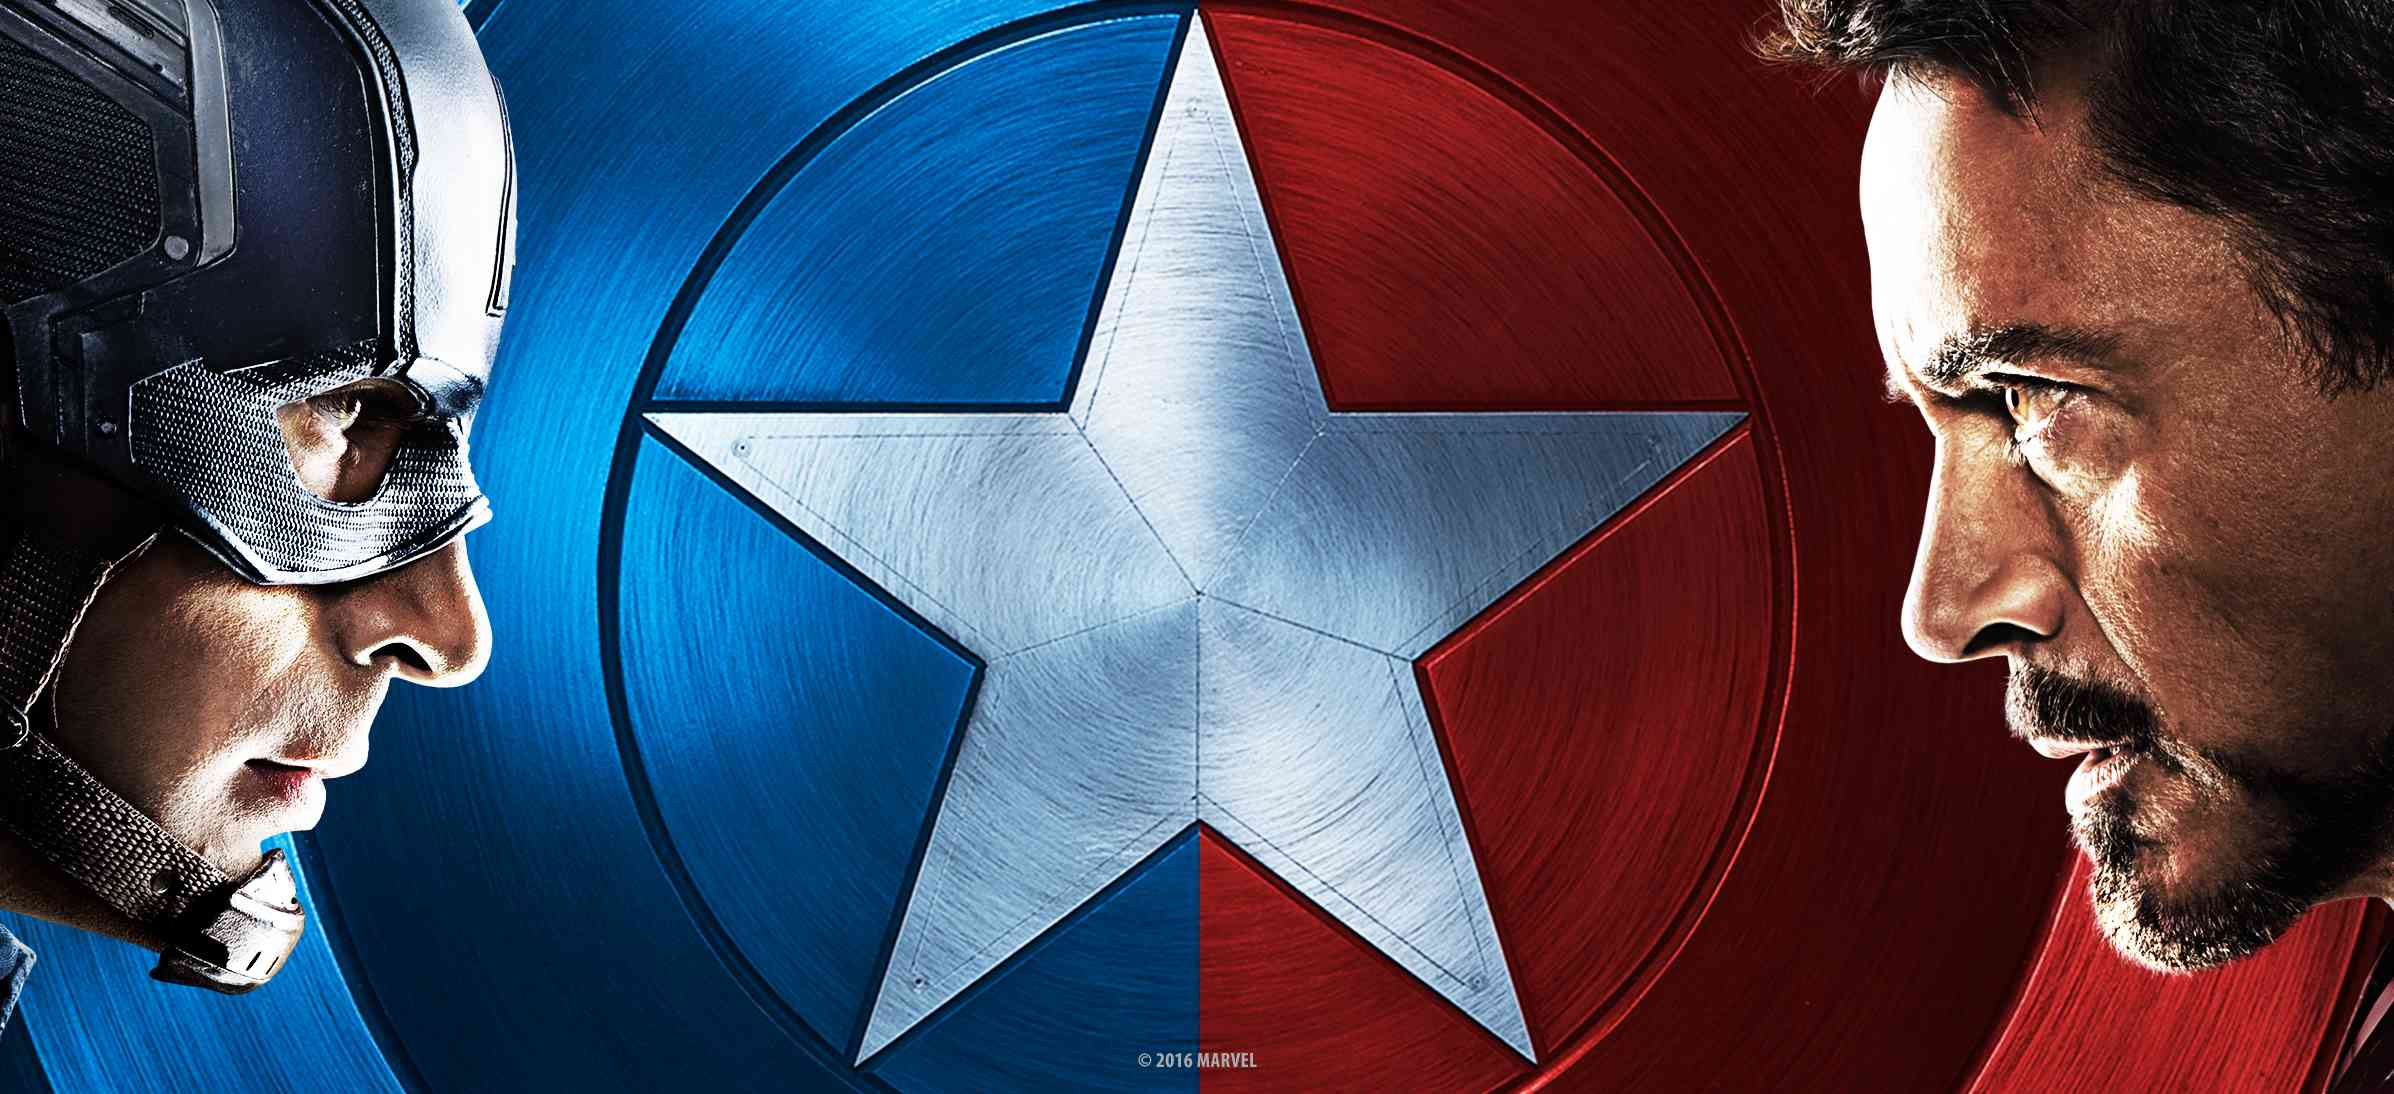 Captain_America-_Civil_War=Keystones=Key_Art=PNG===DELTA=ALL=H219=2394_x_1094=062316